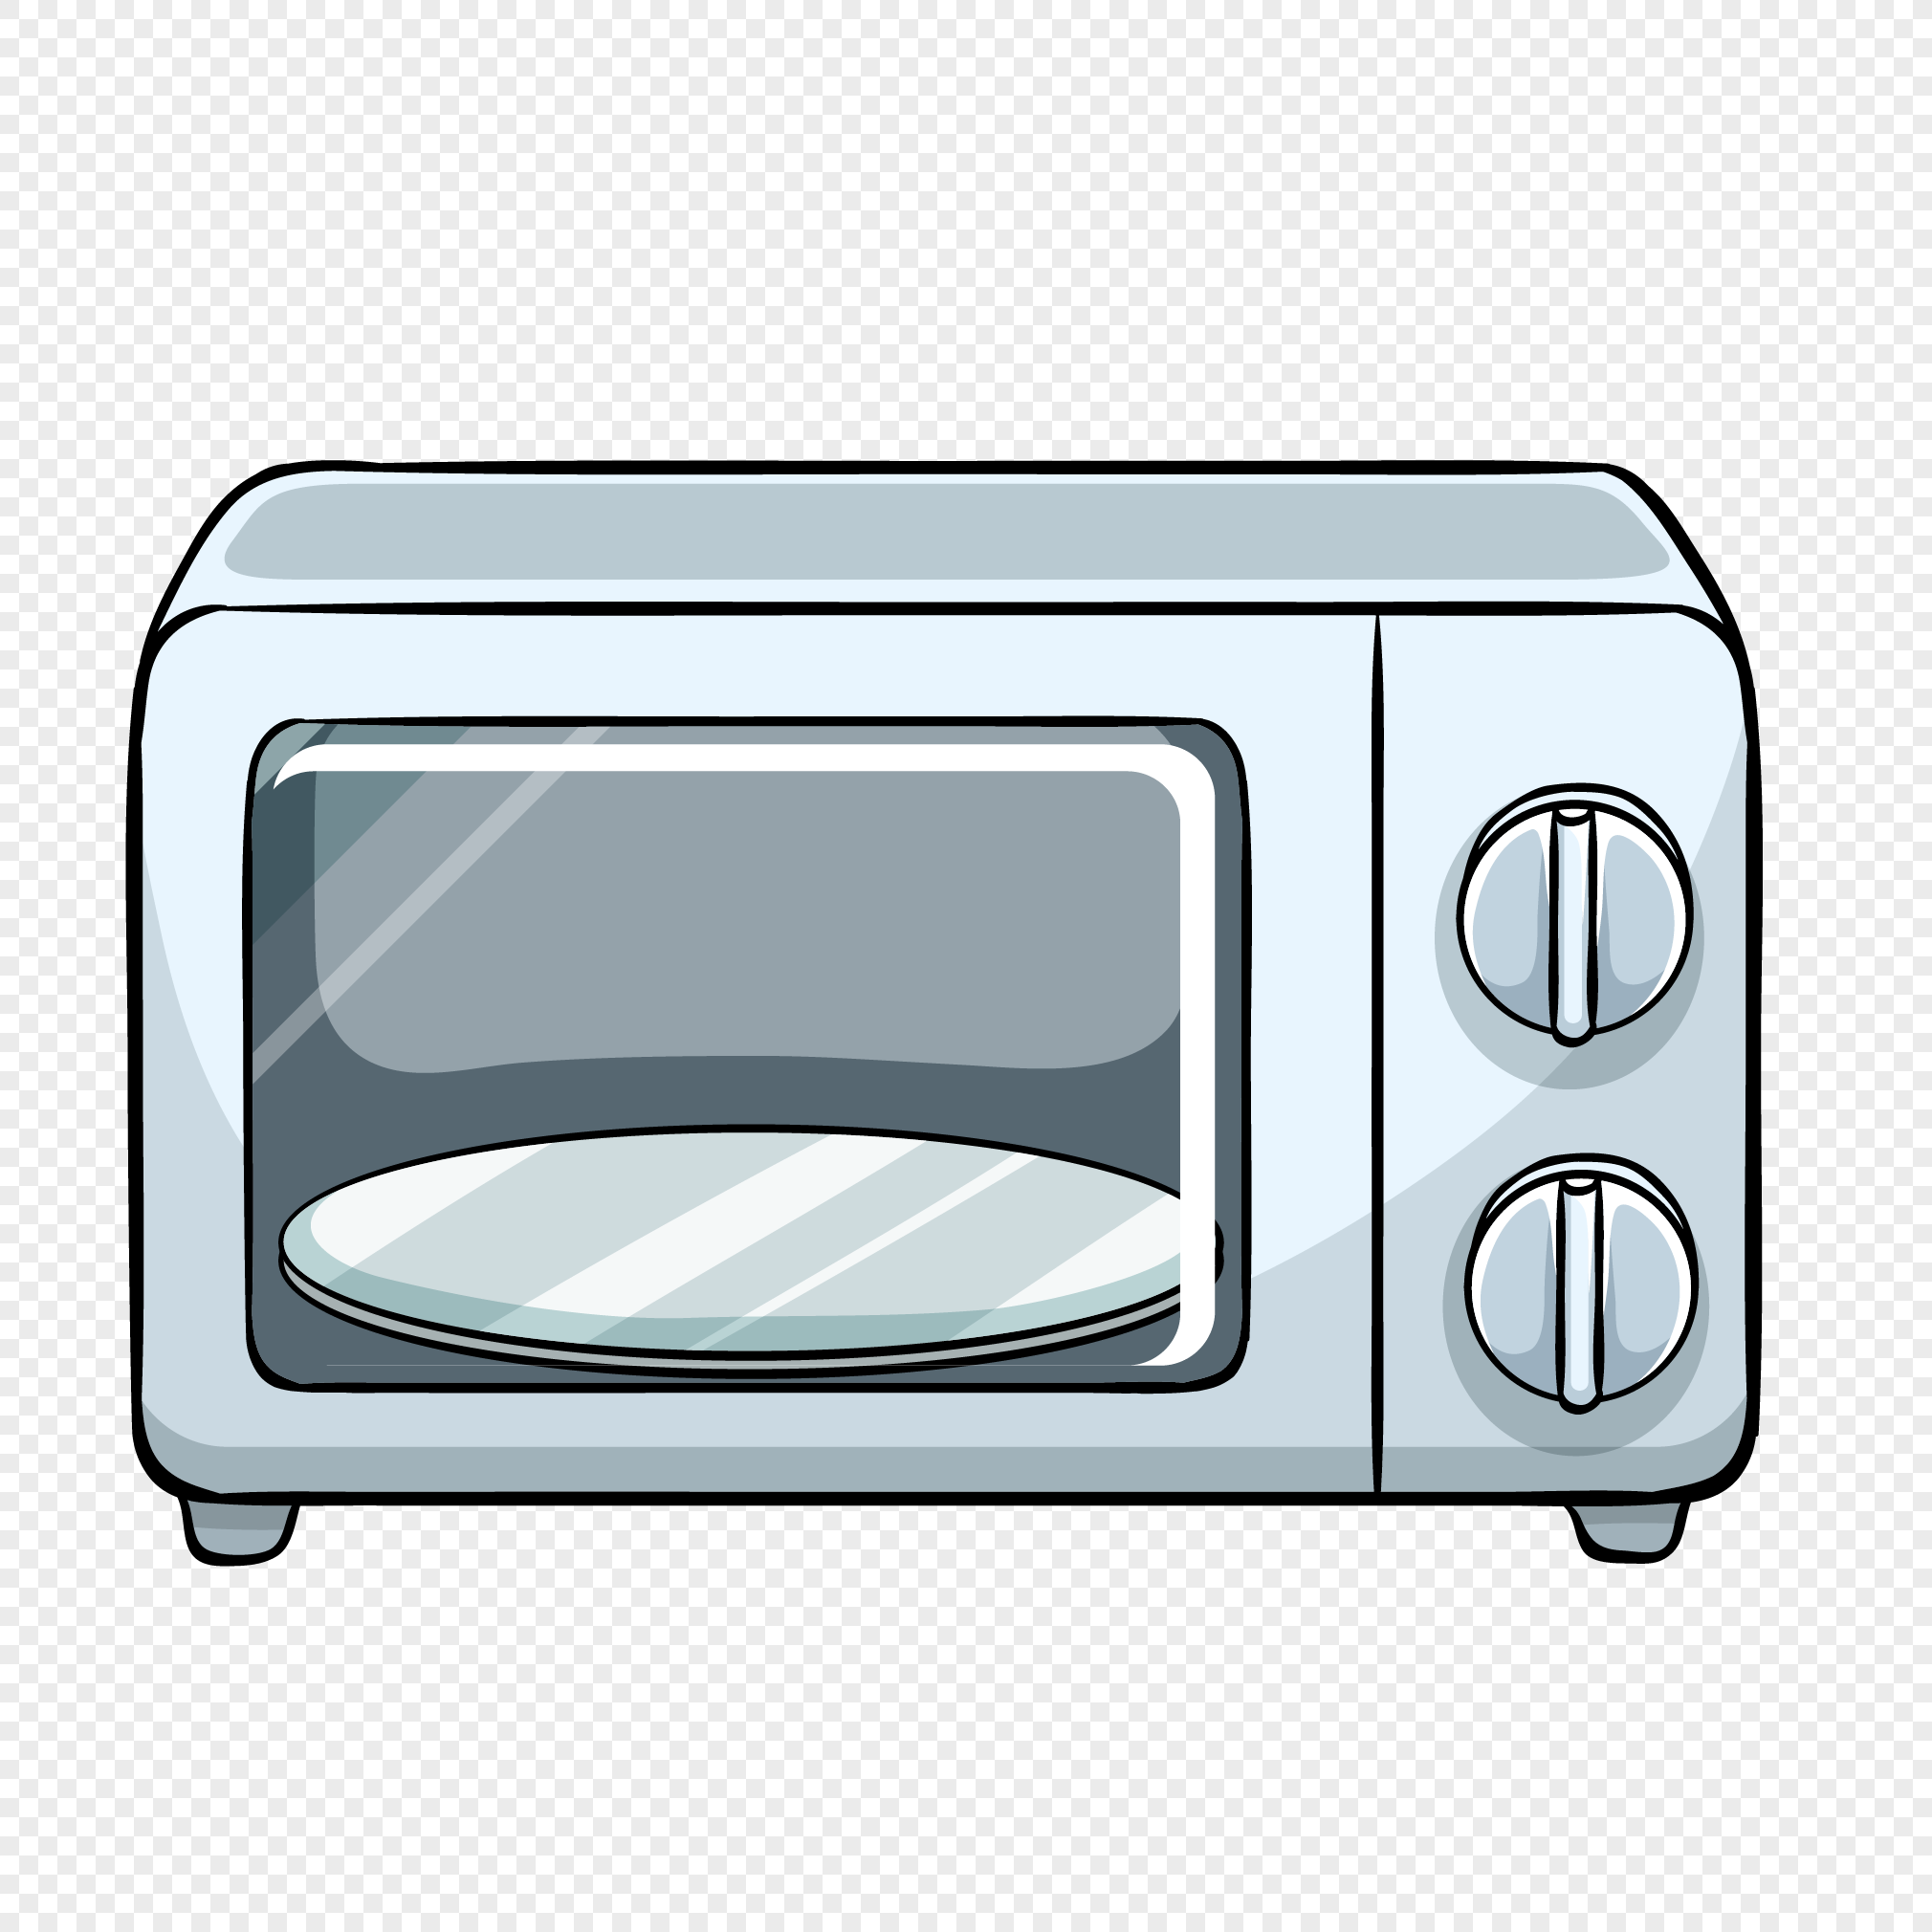 Microwave Oven For Household Appliances Png Image Picture Free